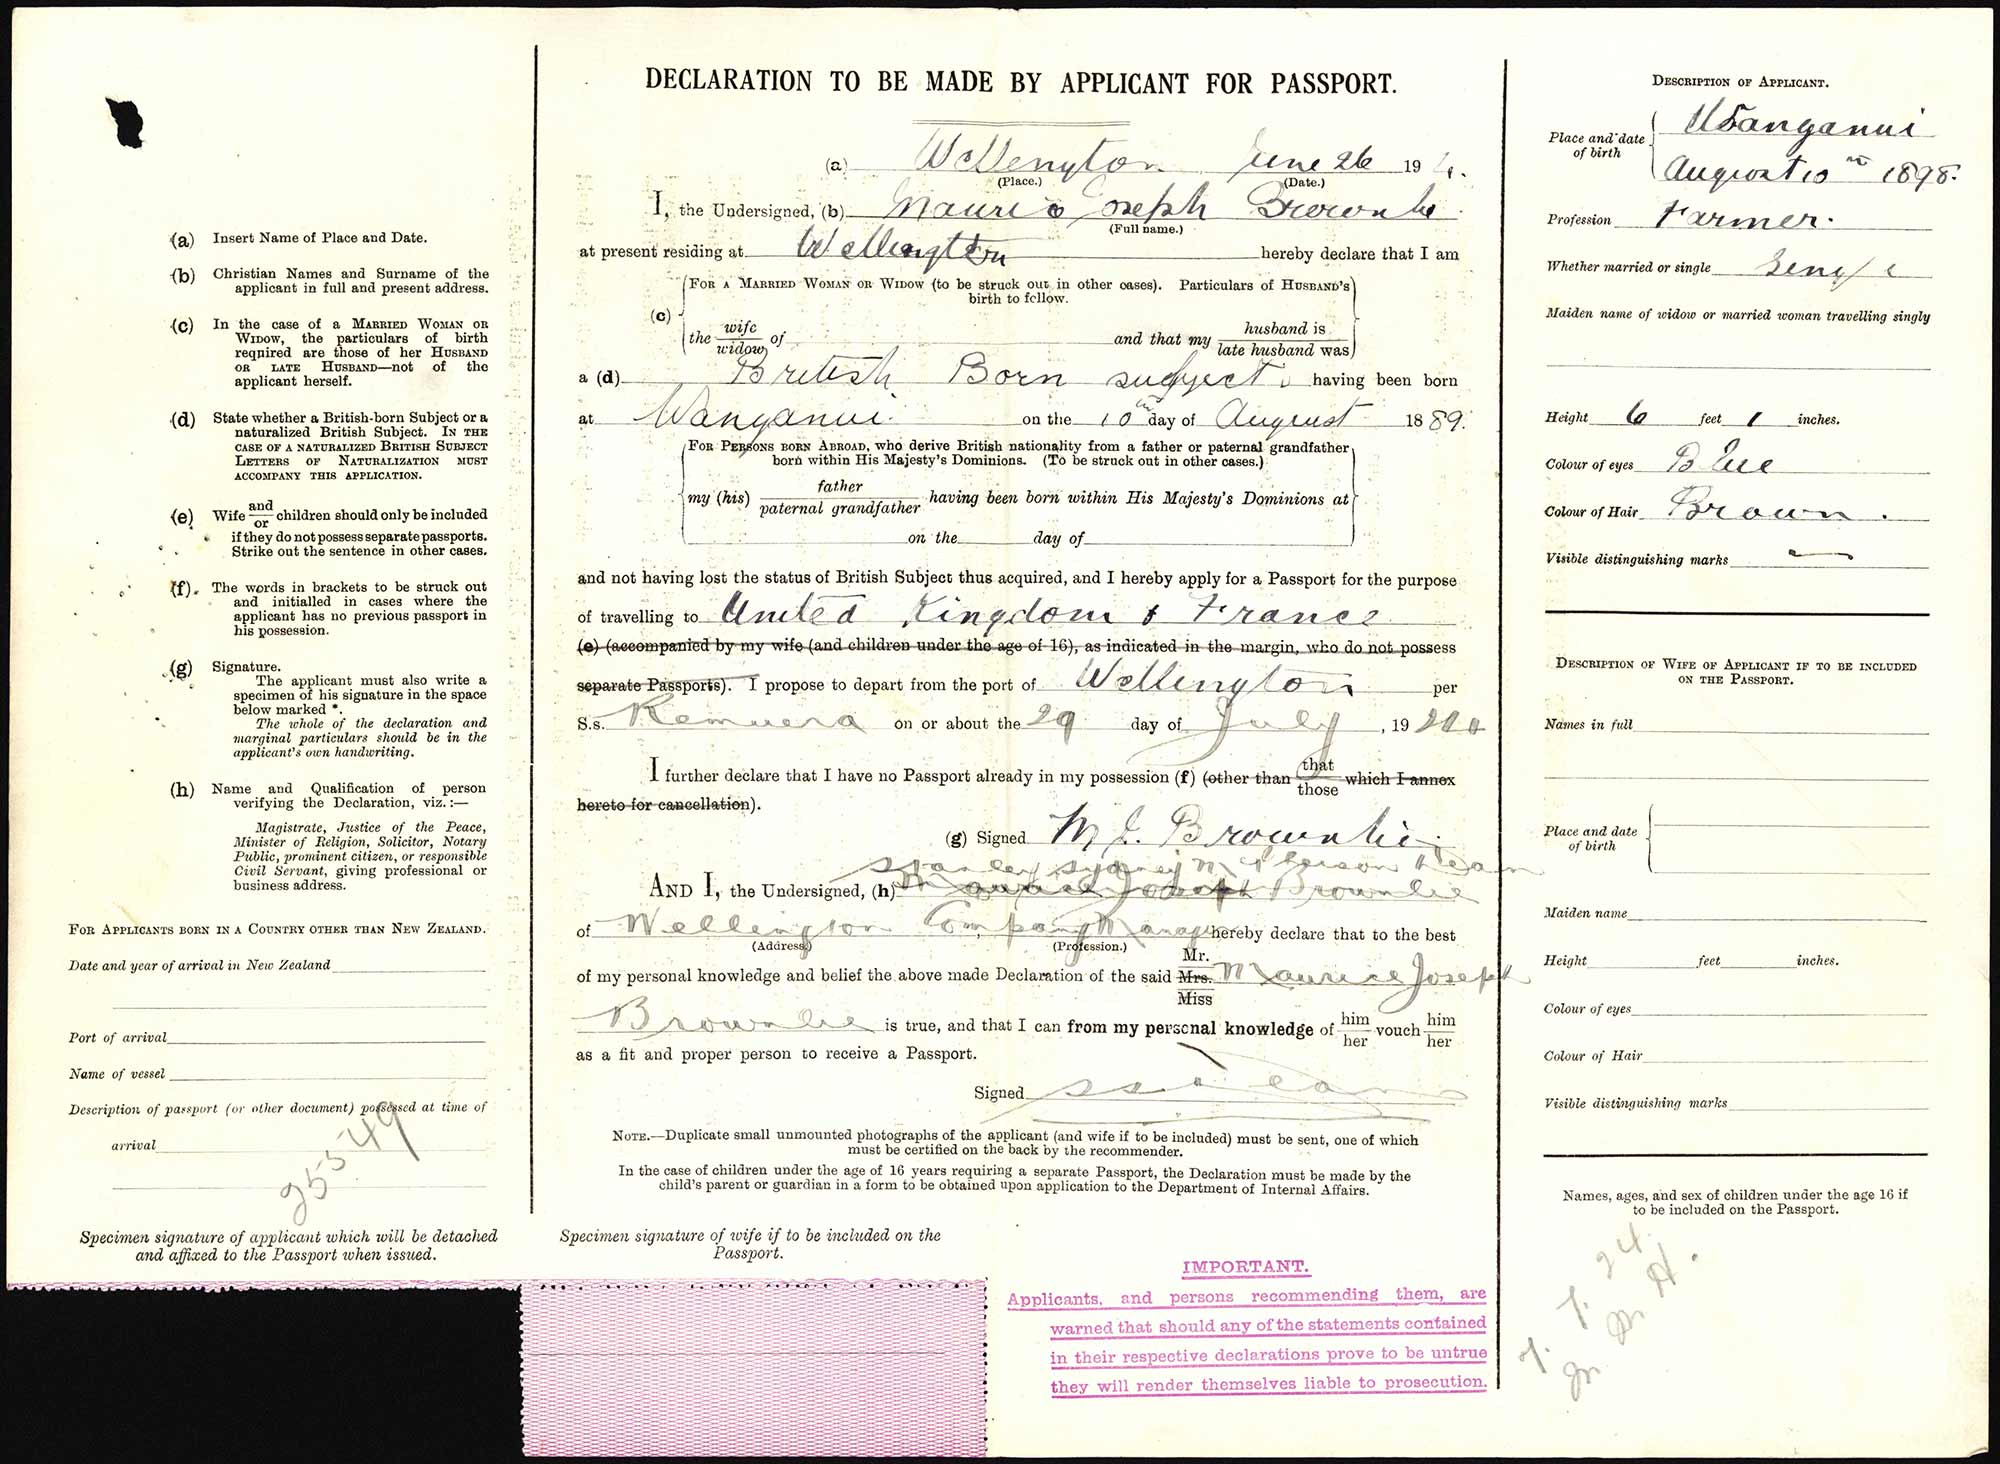 Maurice Joseph Brownlie passport application